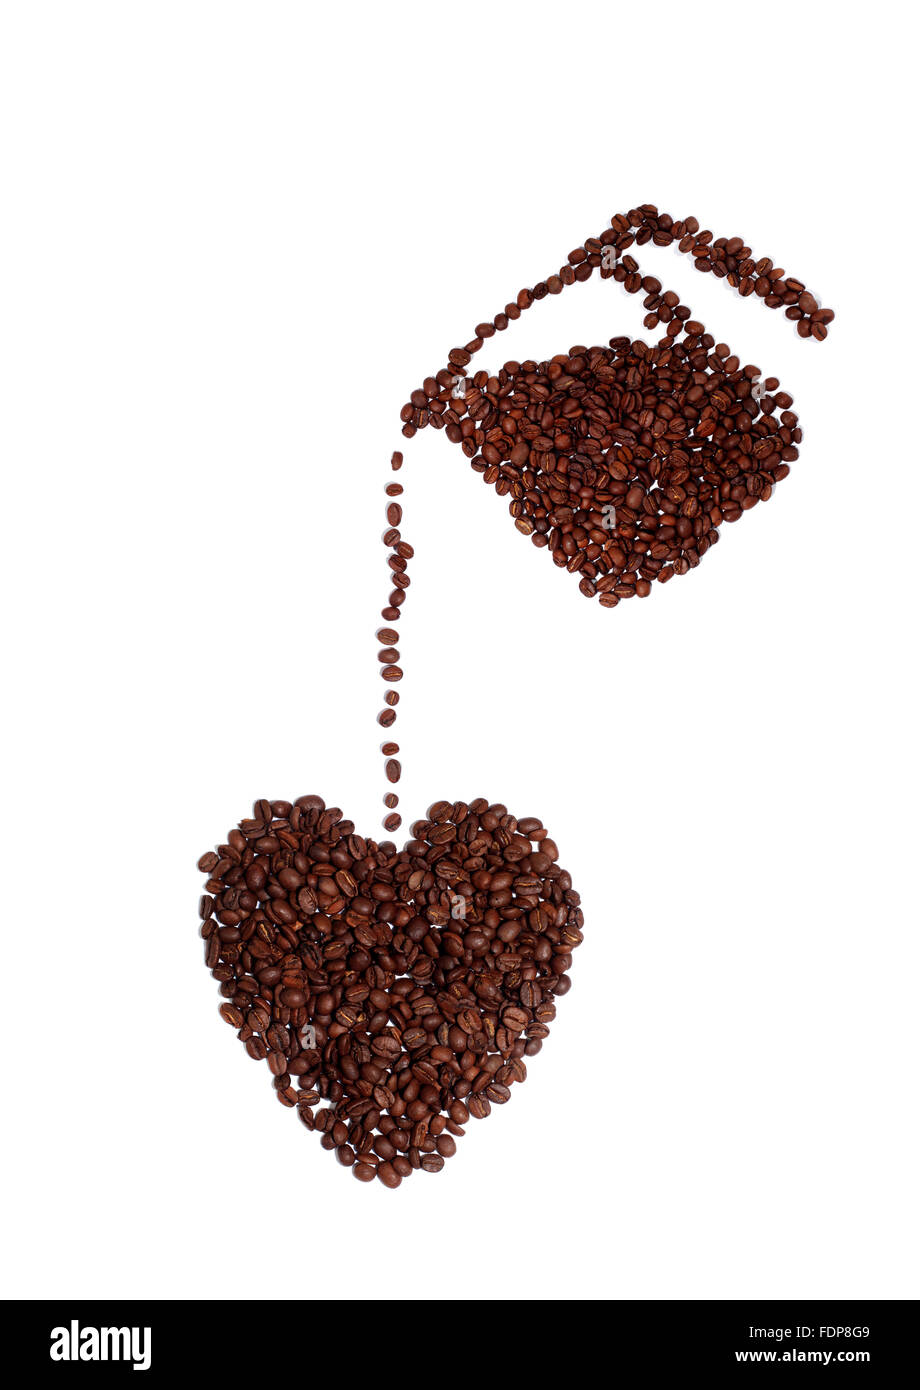 Studio shot of a Coffee Lover's Heart Made of Coffee Beans - Stock Image